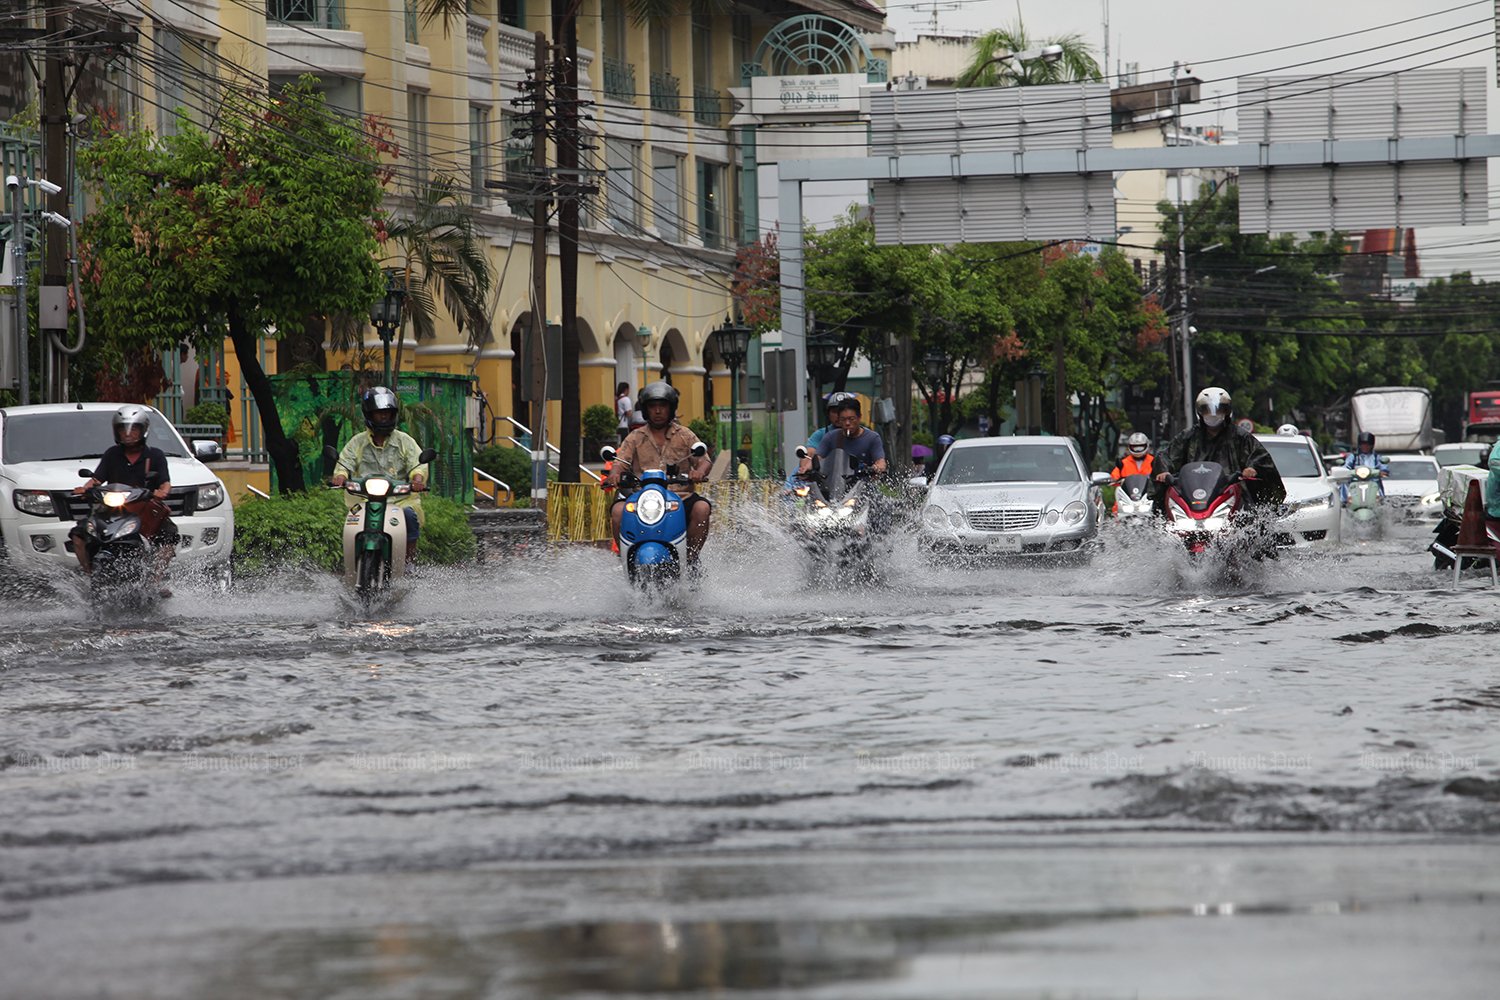 Motorists on Tri Petch Road fight floodwater after a downpour in Bangkok on Friday. (Photo by Apichart Jinakul)